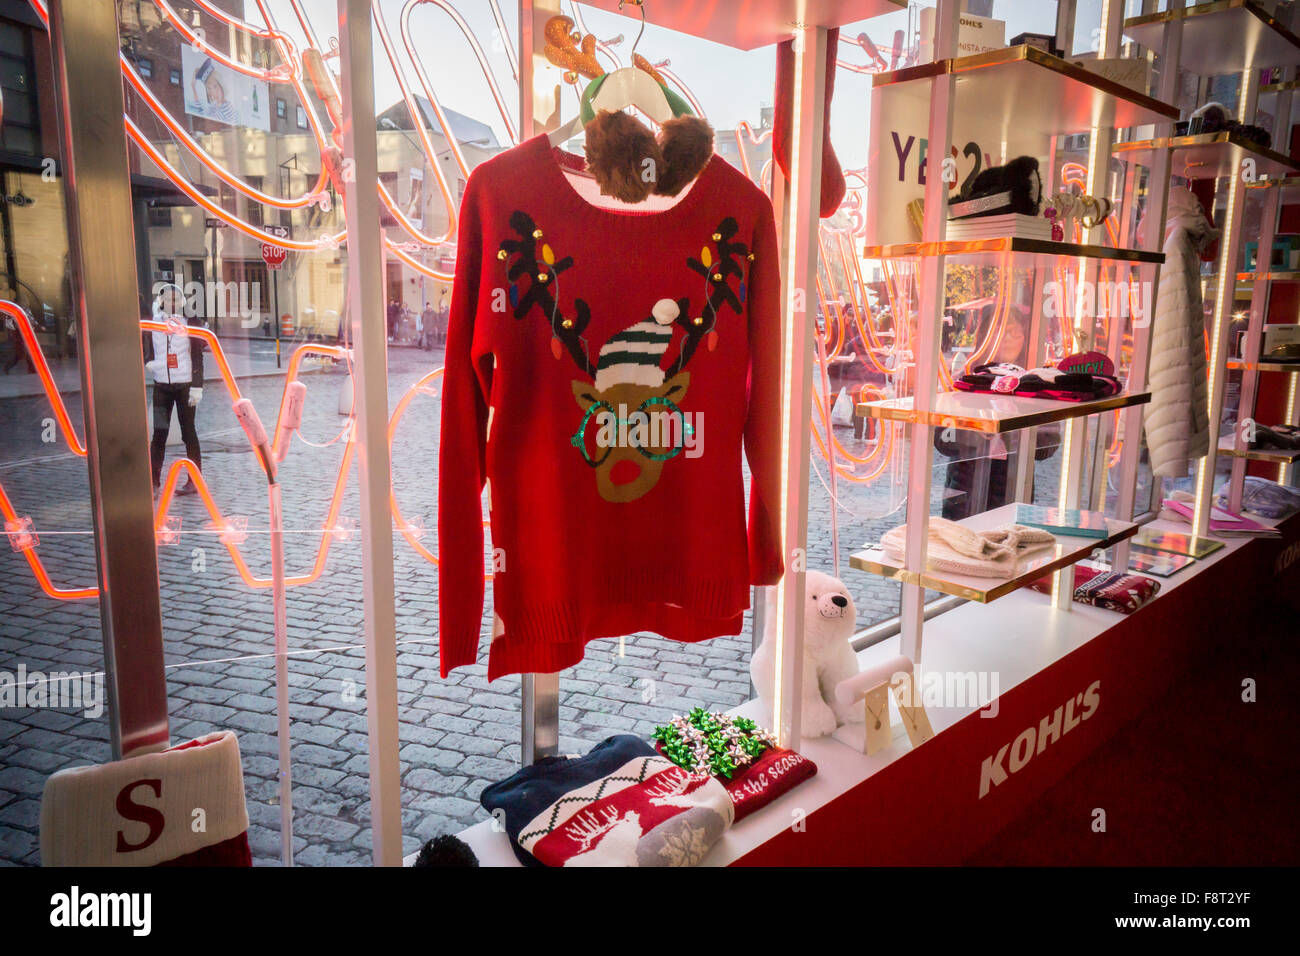 Kohl Ugly Christmas Sweaters.An Ugly Christmas Sweater And Other Merchandise In The